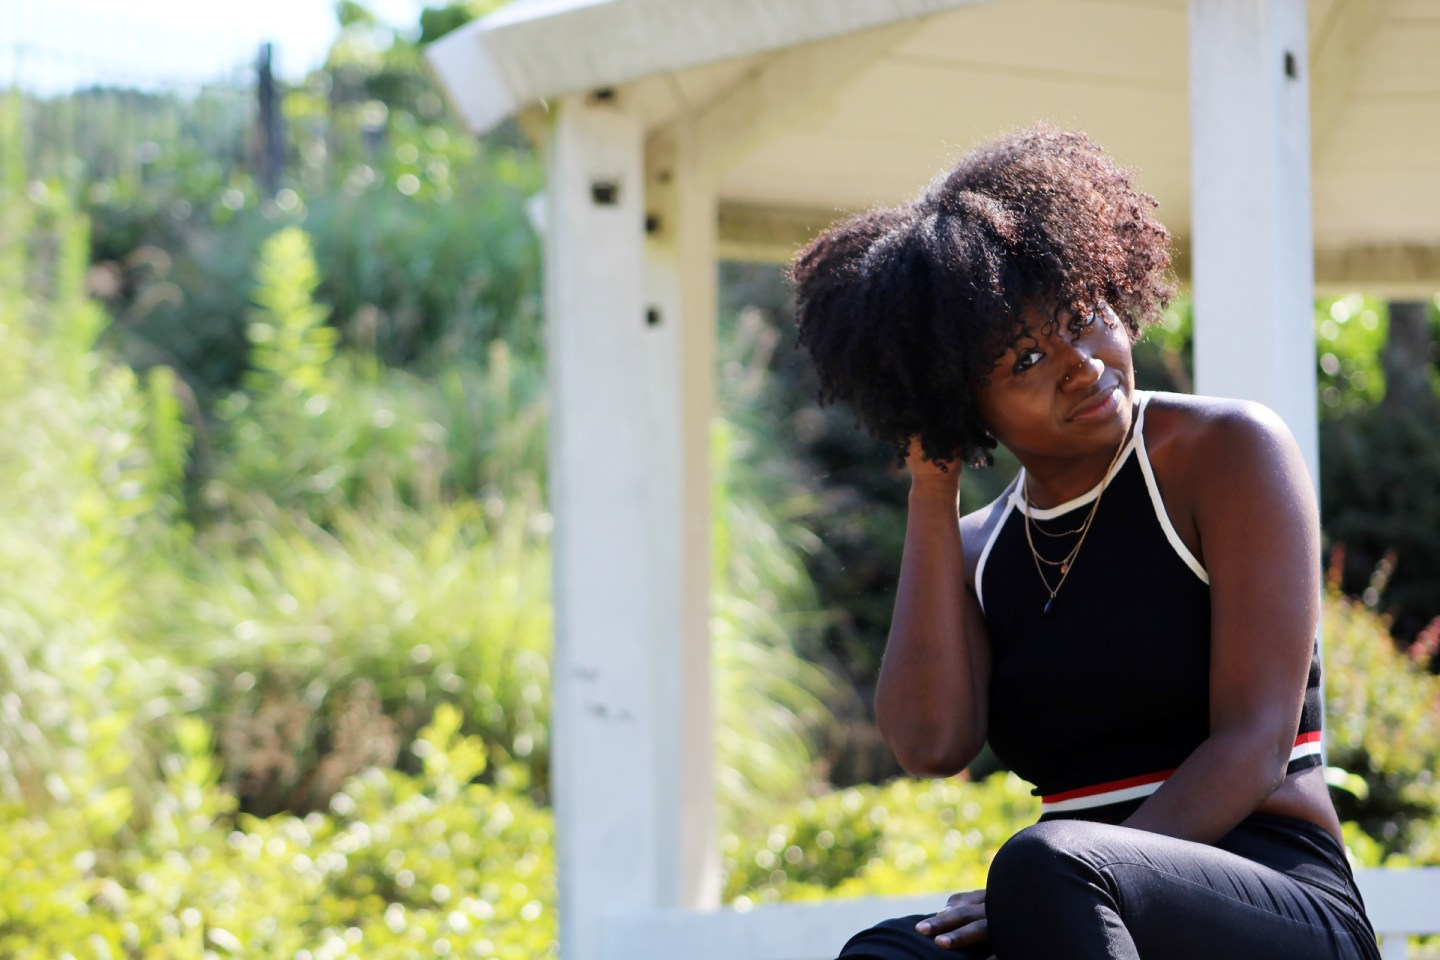 How To Keep Natural Hair When Everyone In Your Circle Is Relaxed